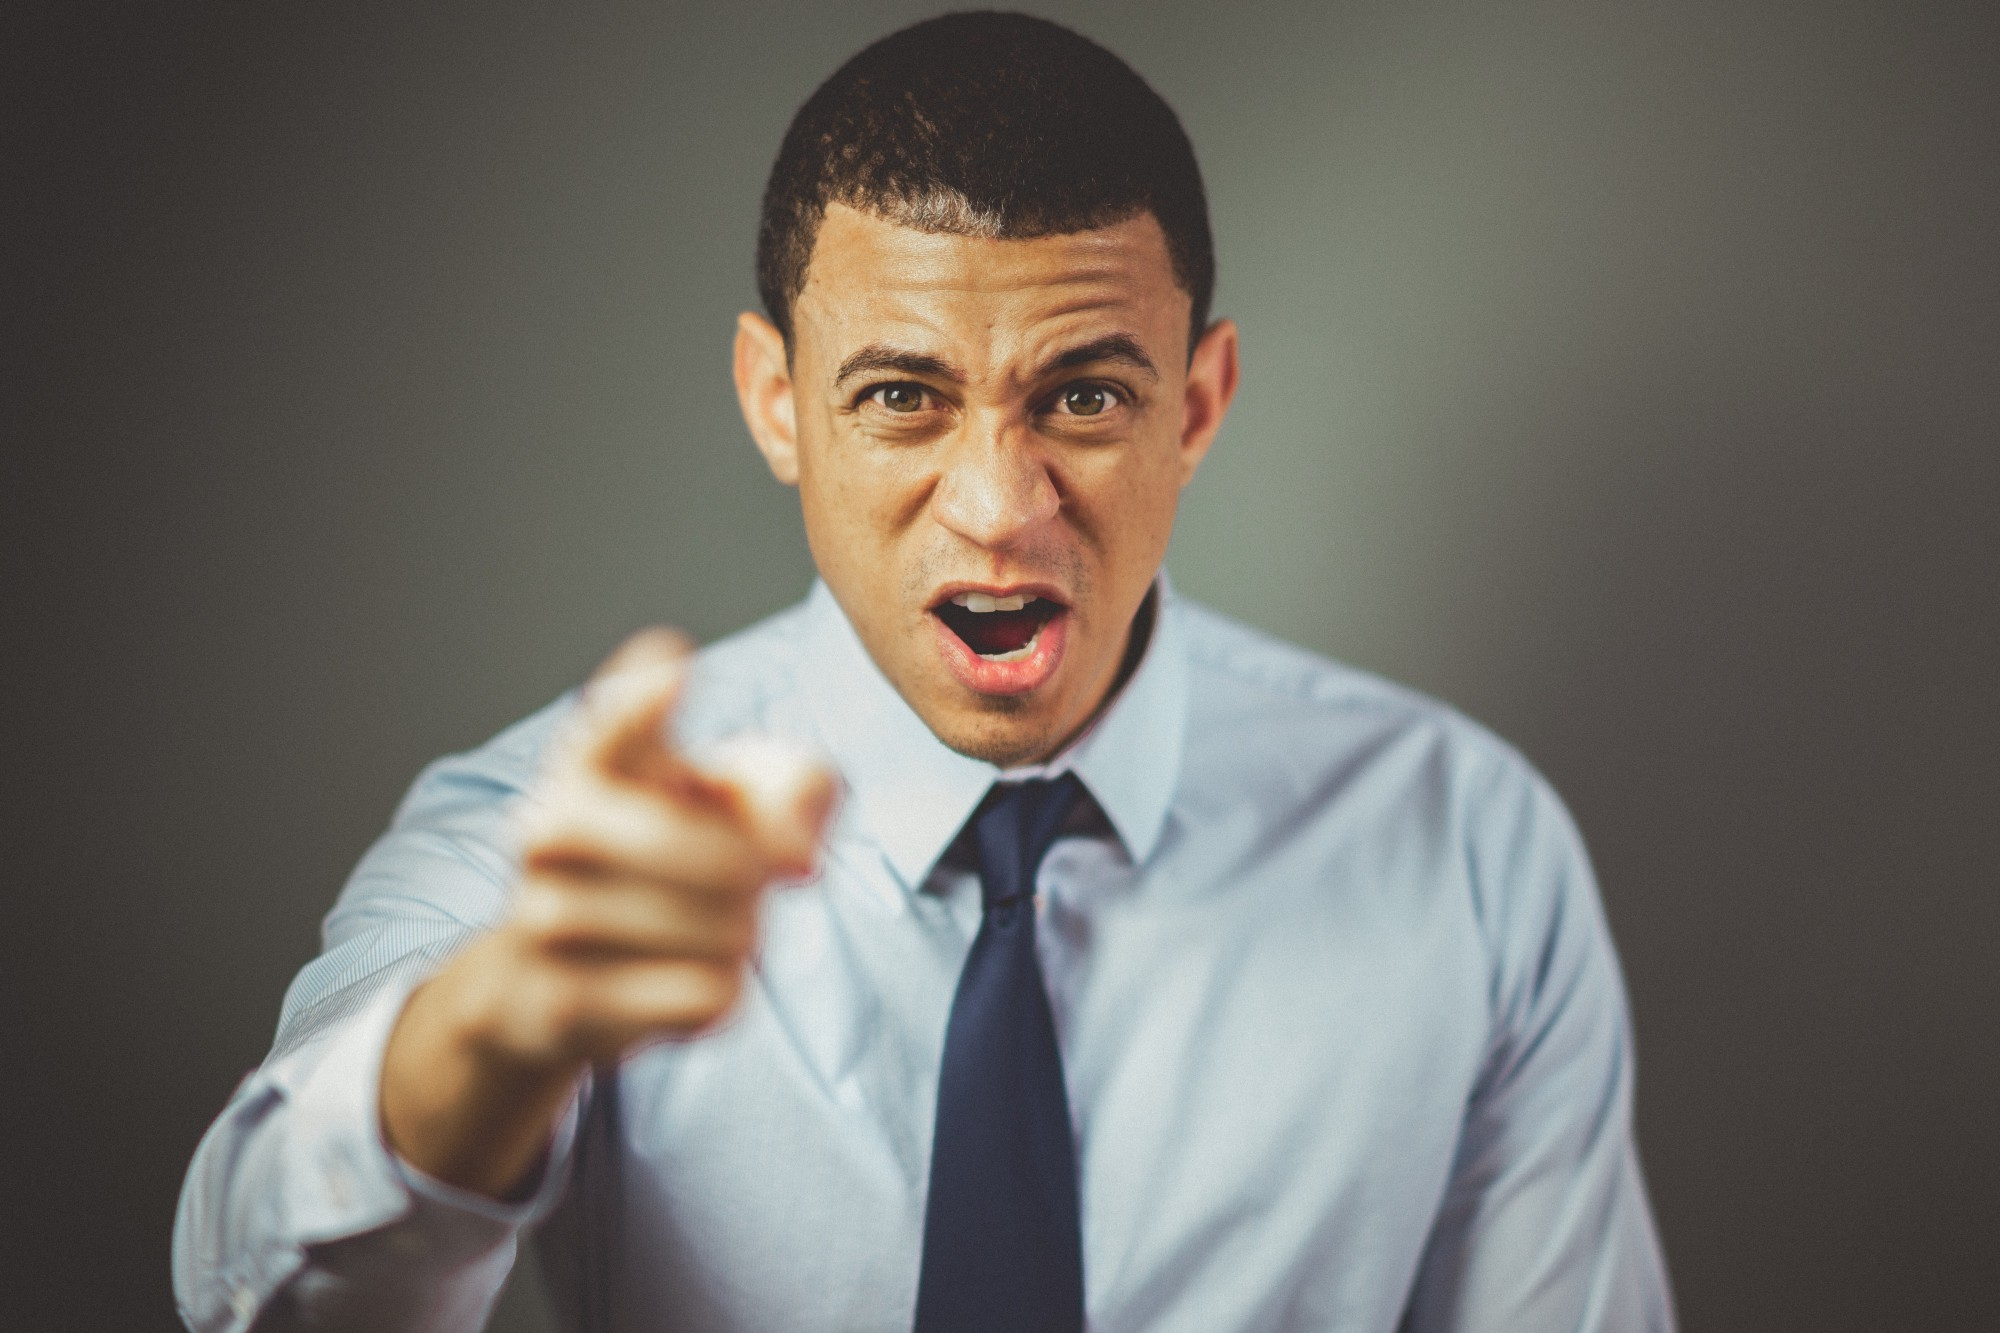 Angry Man in Tie Pointing at Camera